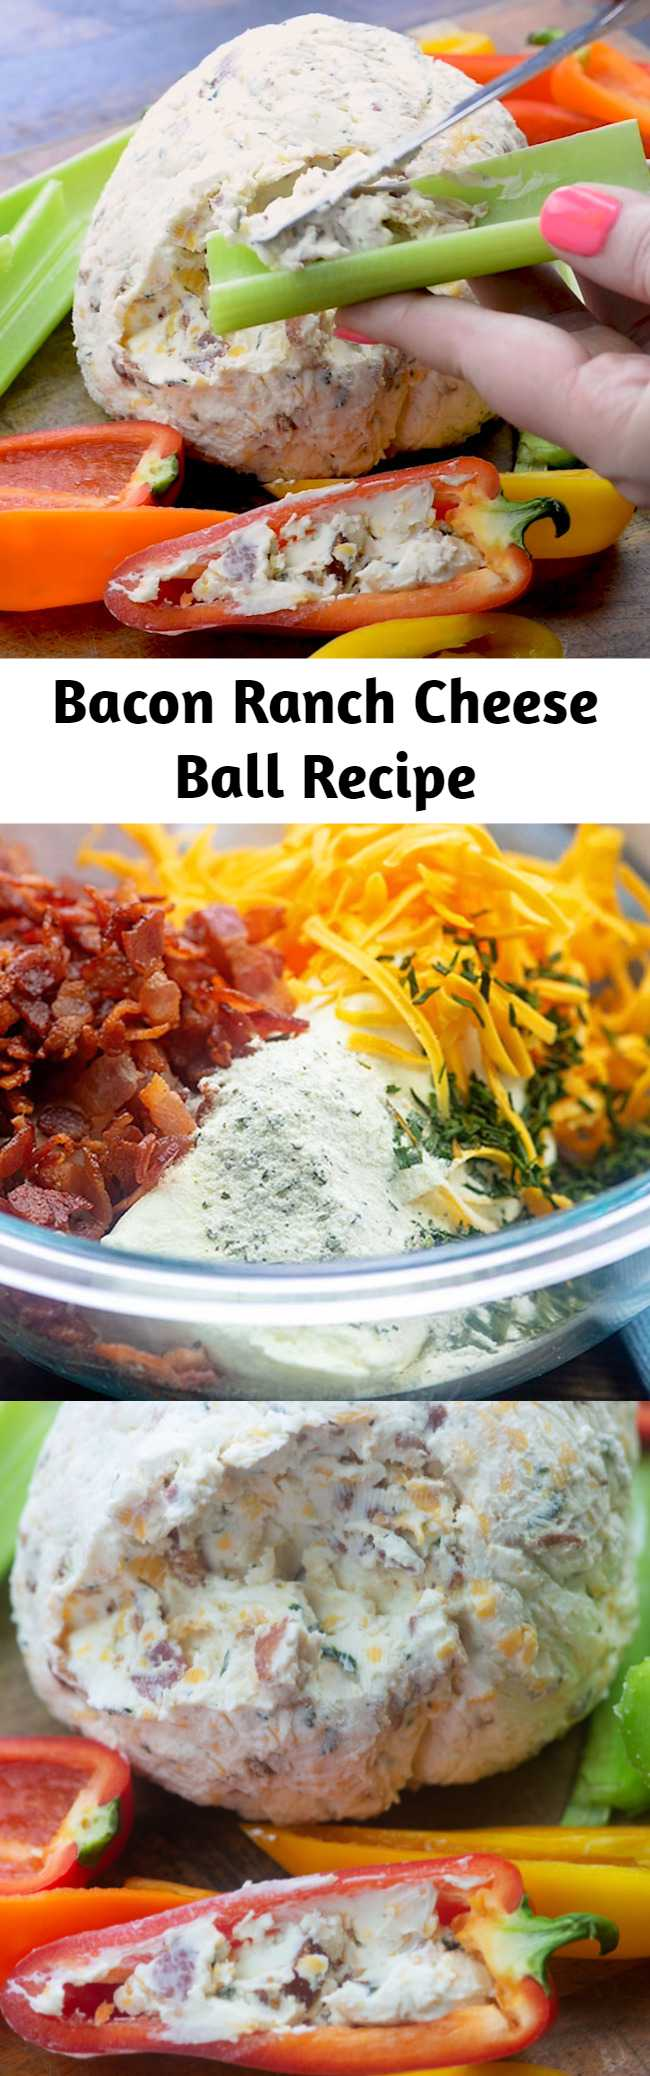 Bacon Ranch Cheese Ball Recipe - This bacon ranch cheese ball is perfect for serving friends and family! Add crackers for the carb lovers and serve it up with celery and sweet peppers for the low carb people! #lowcarb #keto #cheeseball #snack